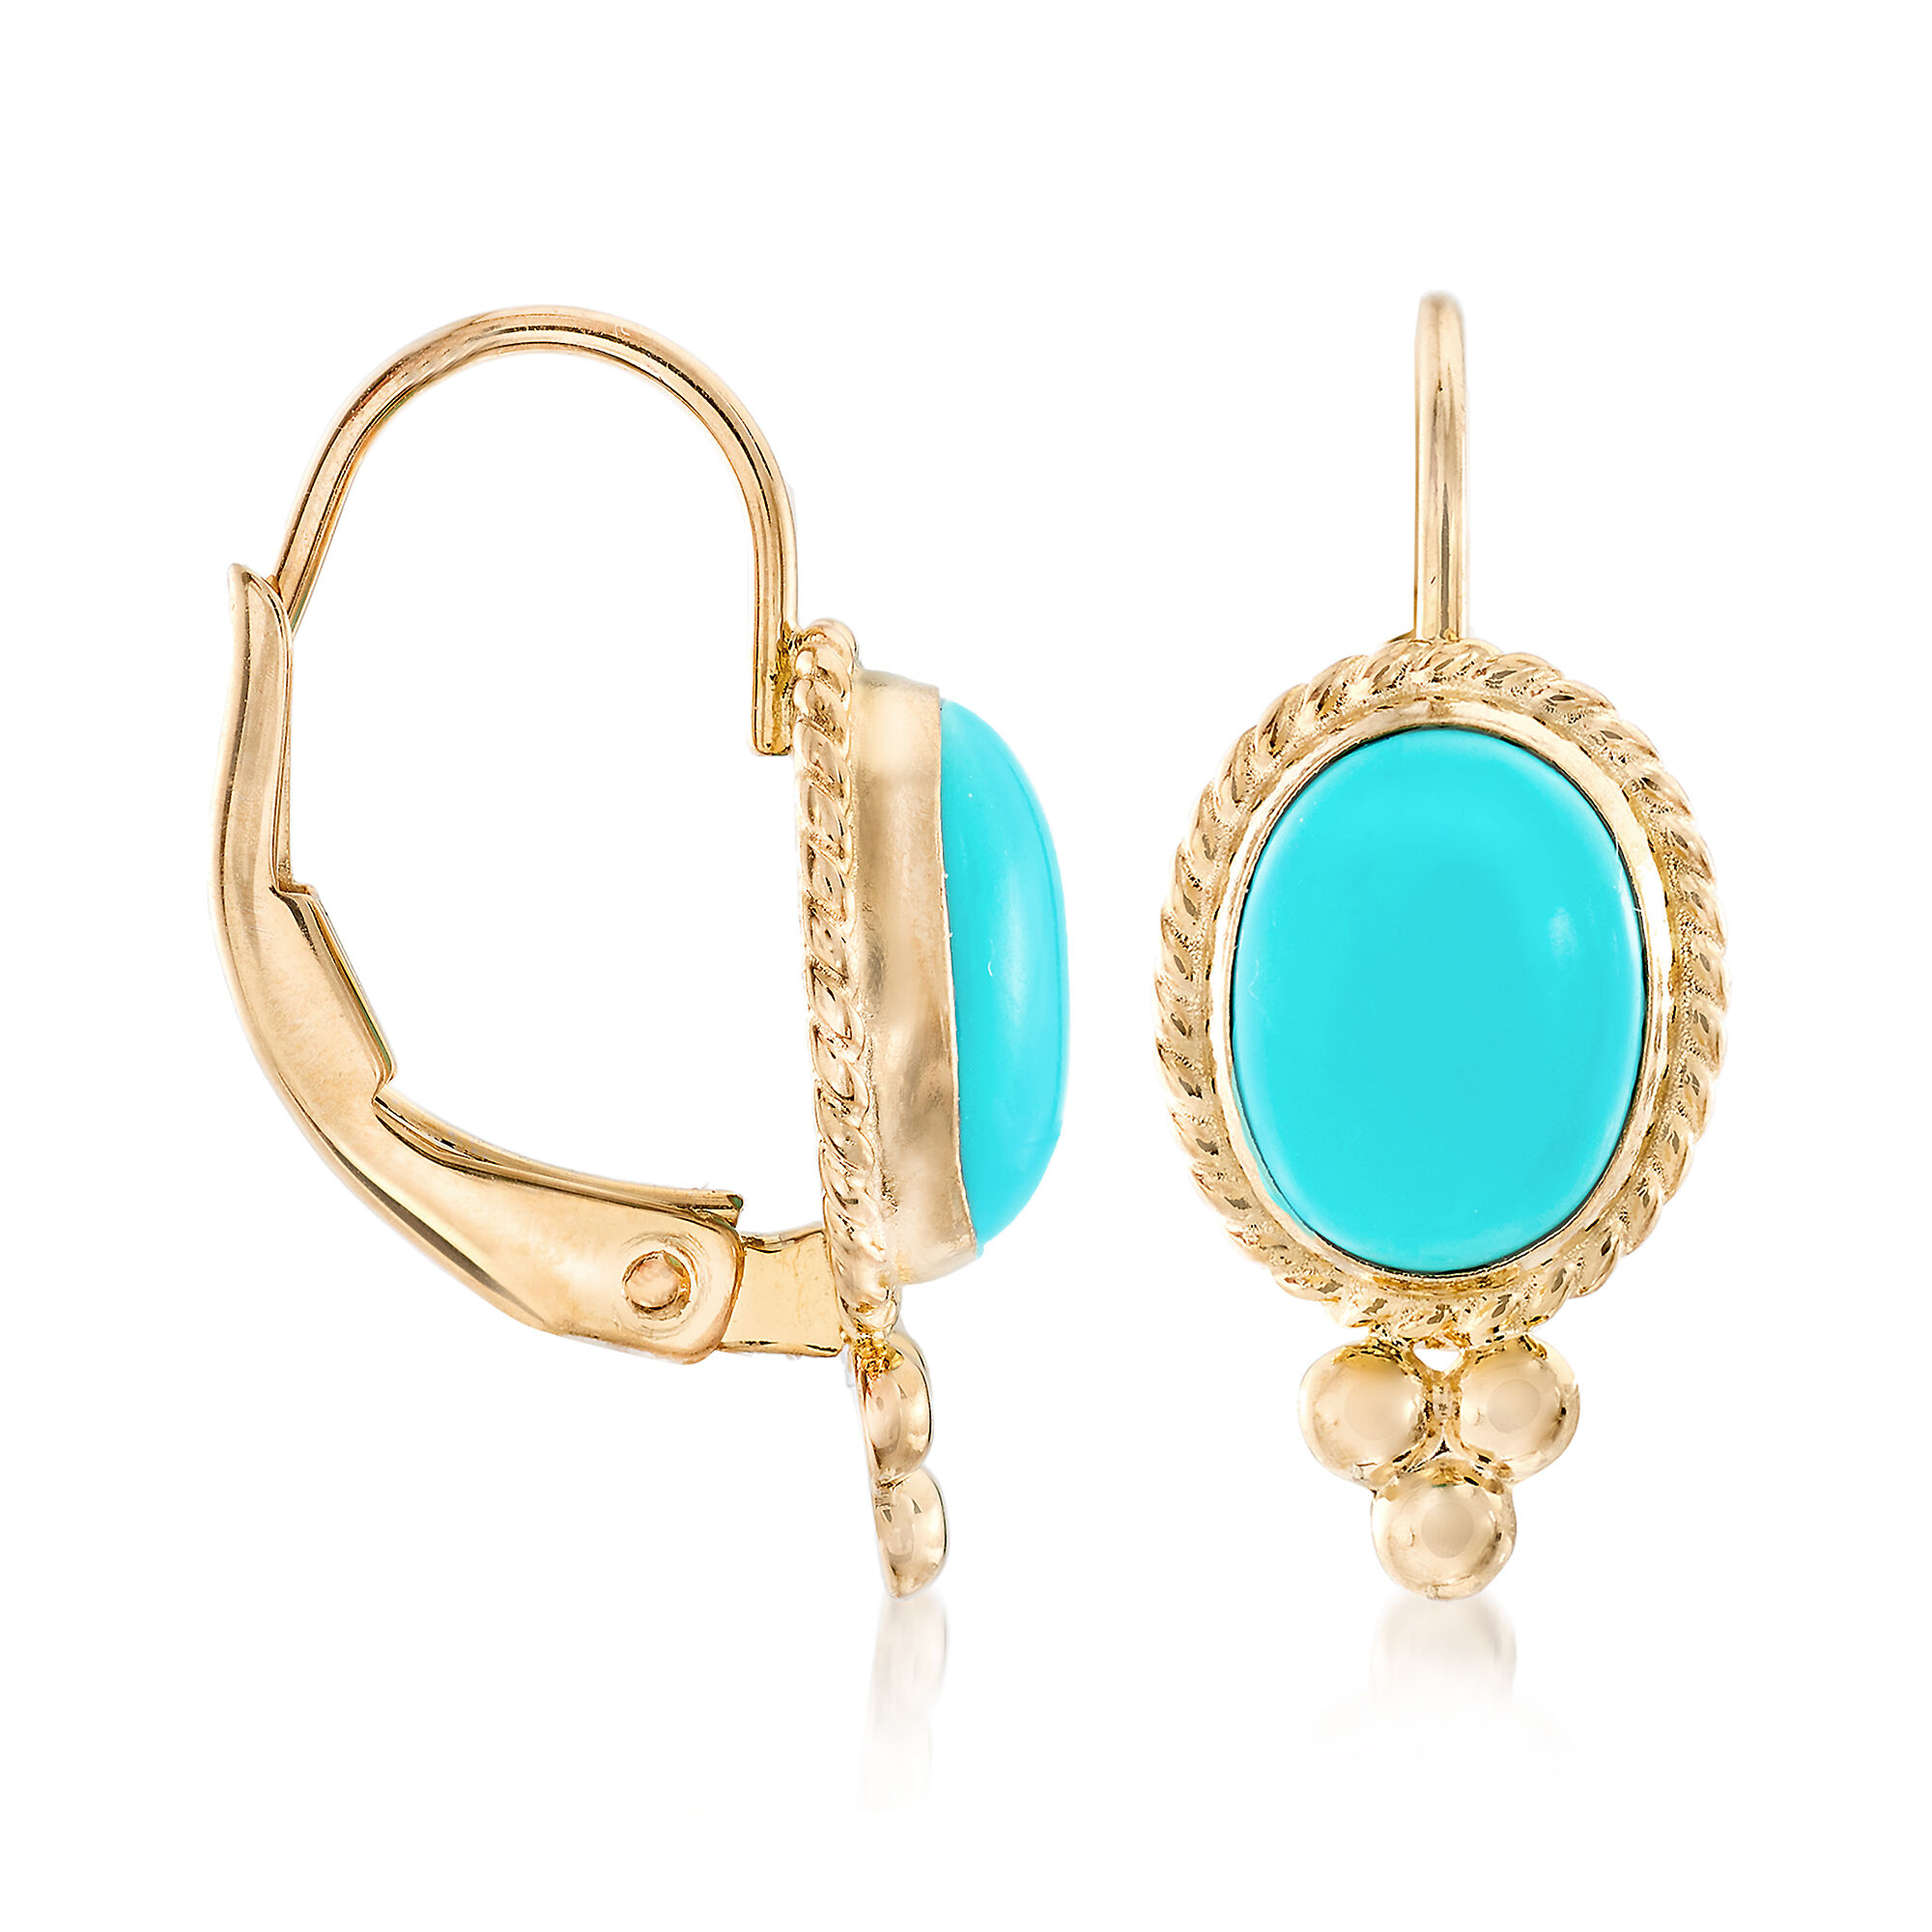 Turquoise Rope Edge Earrings in 14kt Yellow Gold